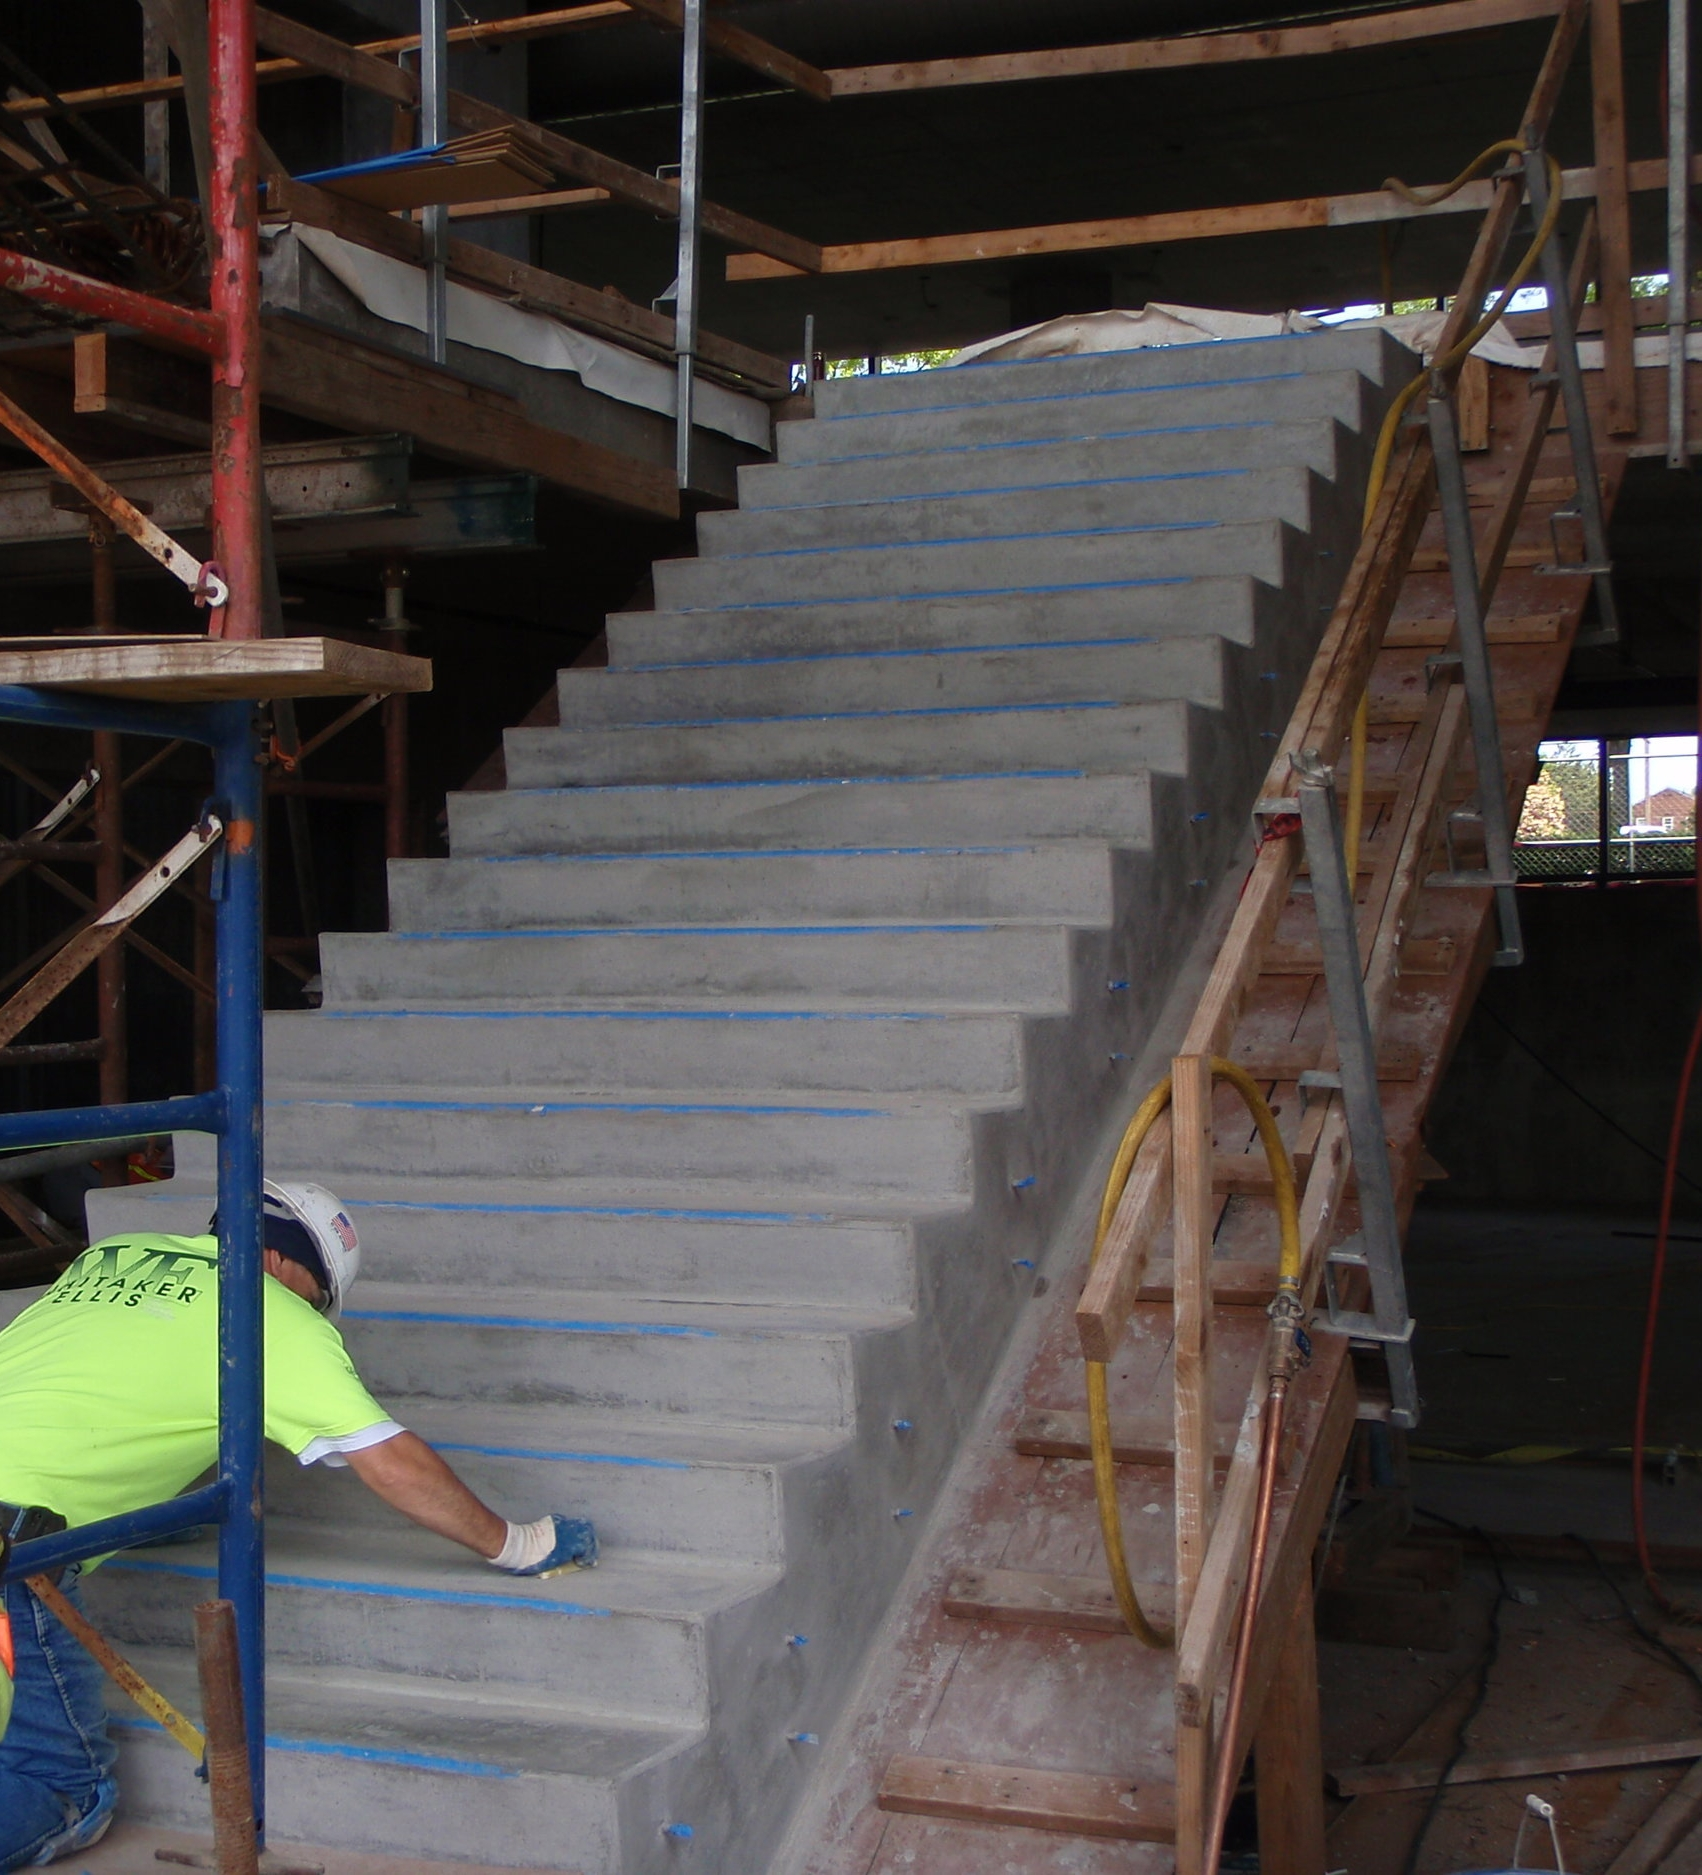 Whitaker/Ellis in the process of creating the award-winning staircase